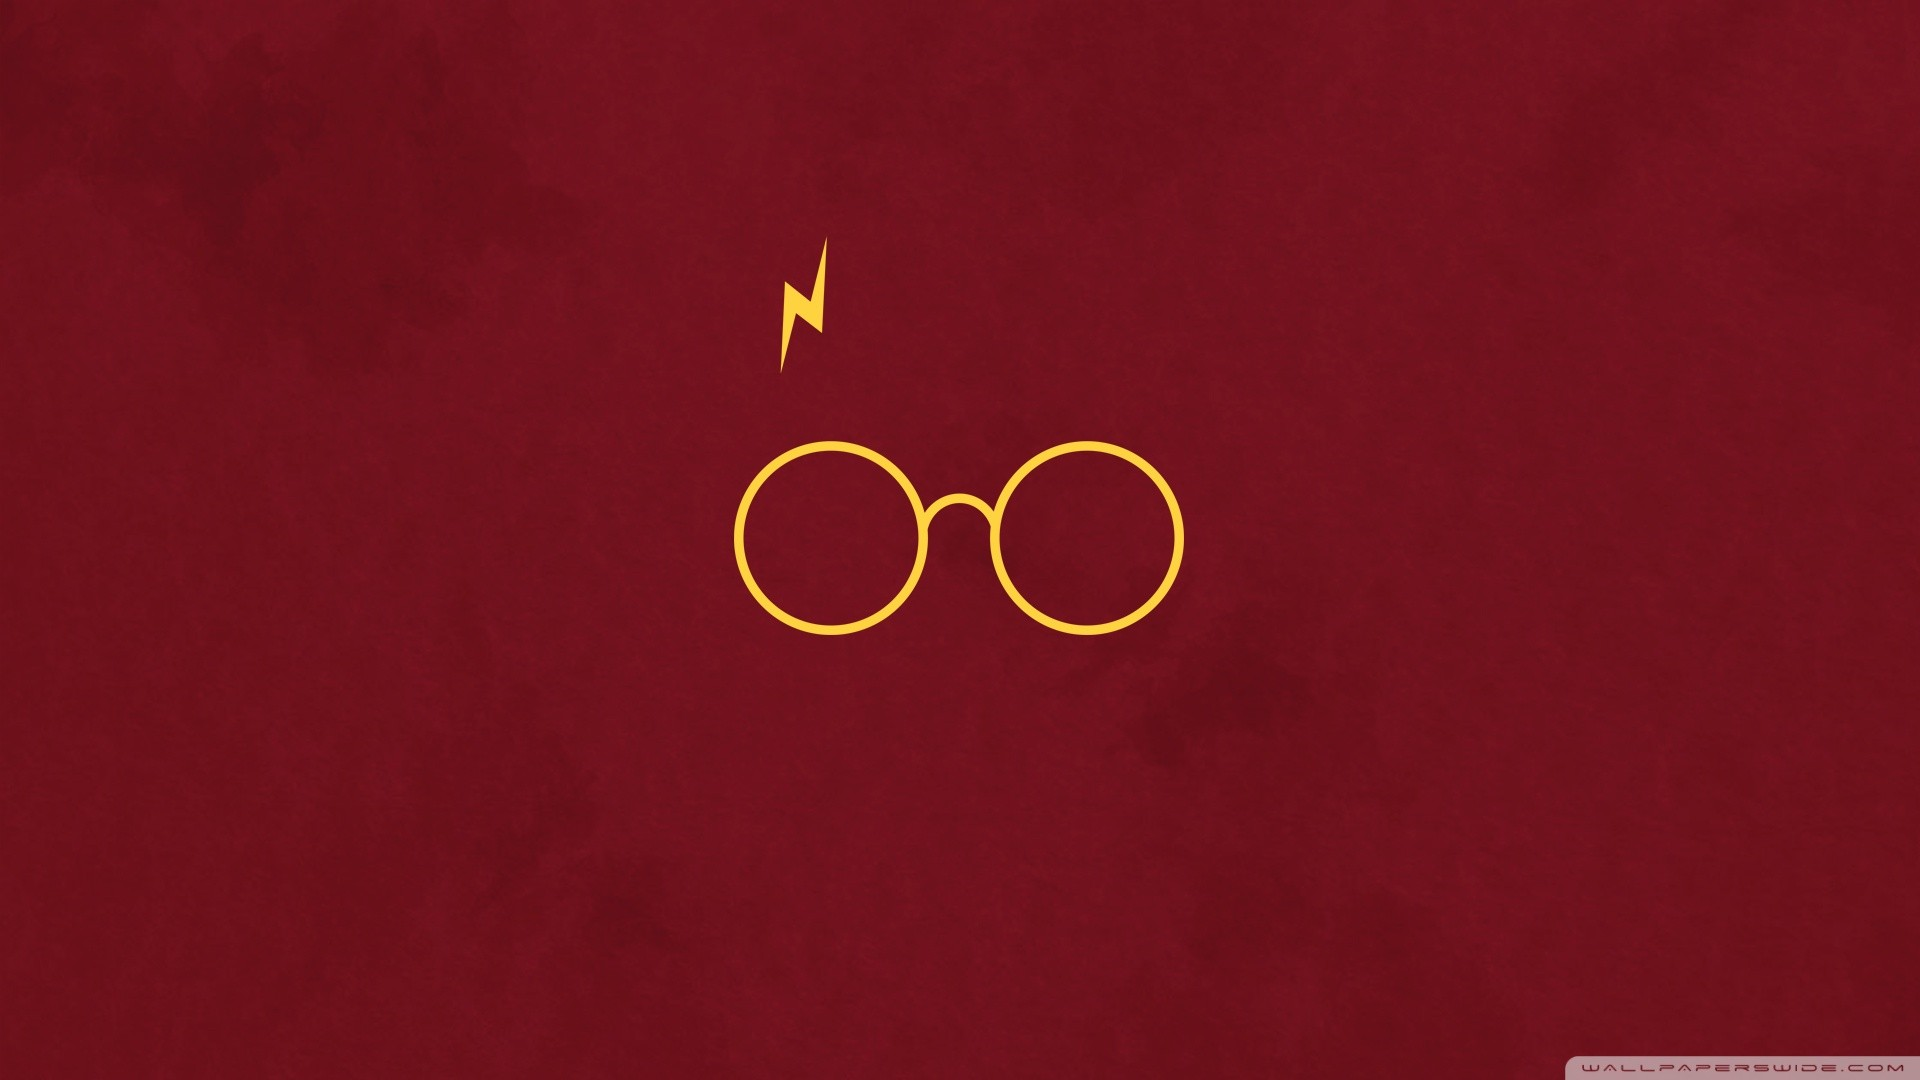 Harry potter wallpaper download free amazing high - Best harry potter wallpapers ...